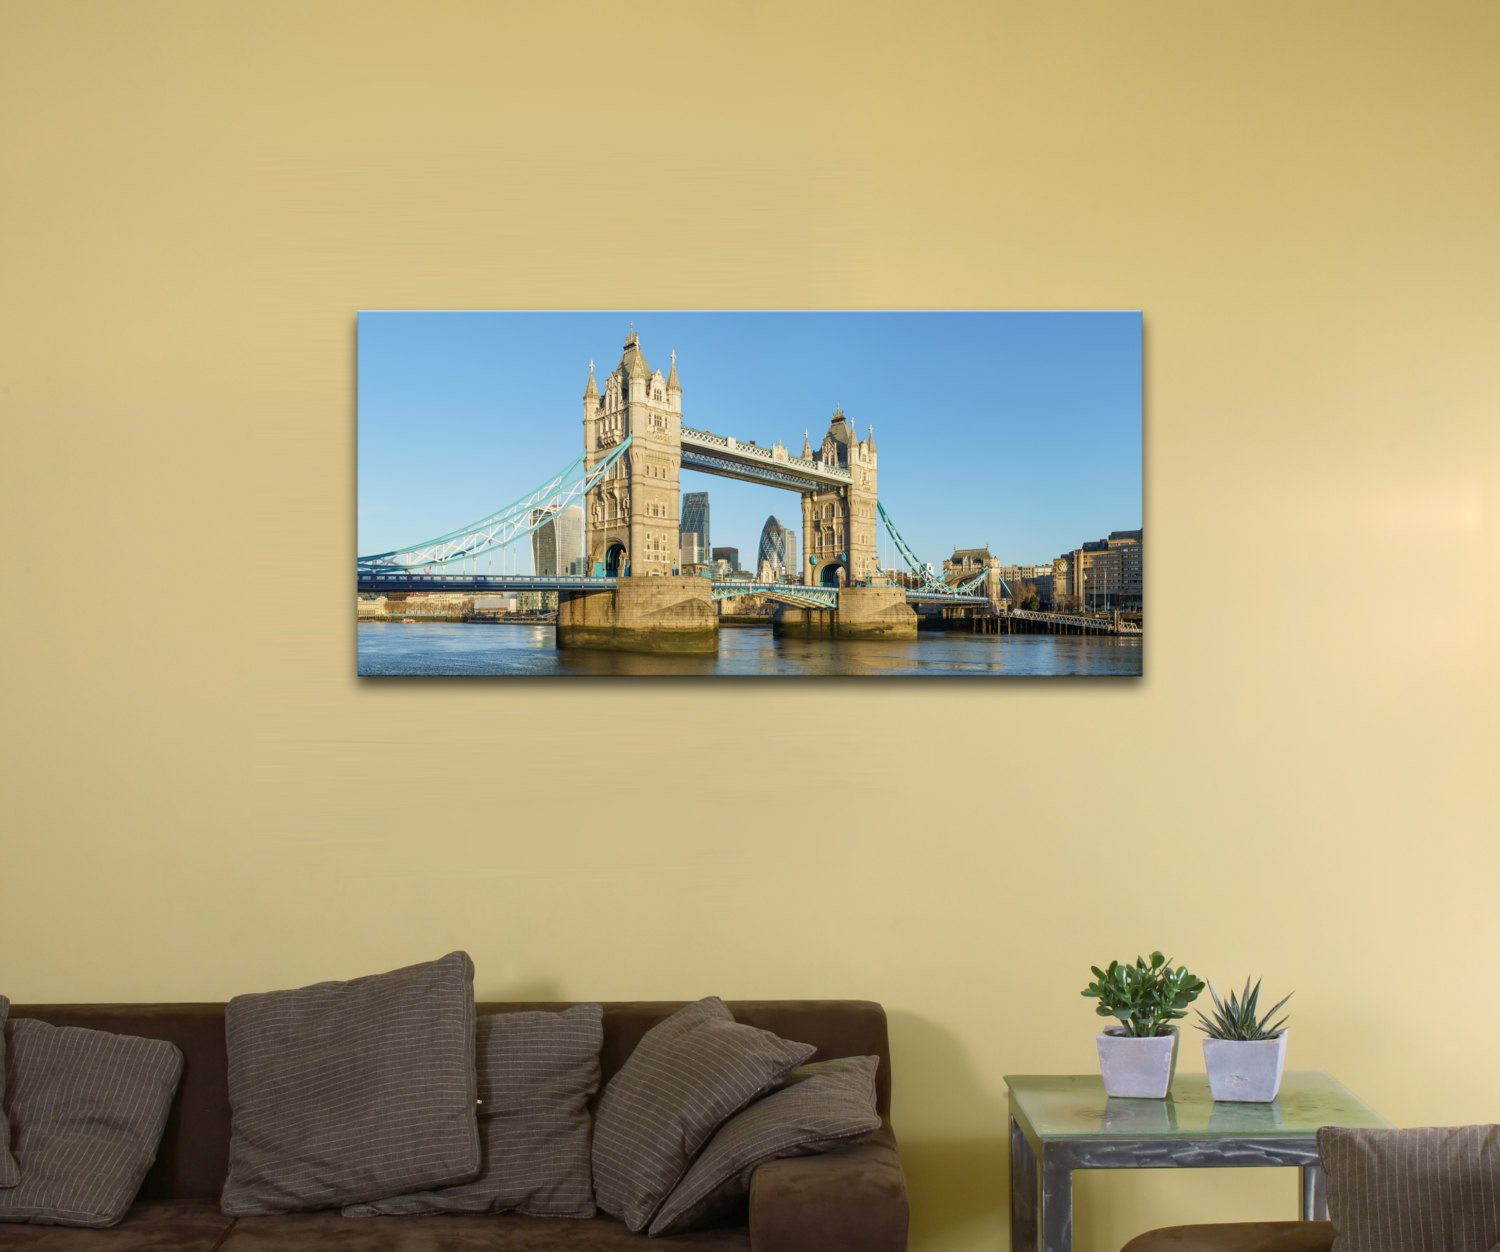 Tower Bridge, United Kingdom (12″ x 24″) – Canvas Wrap Print